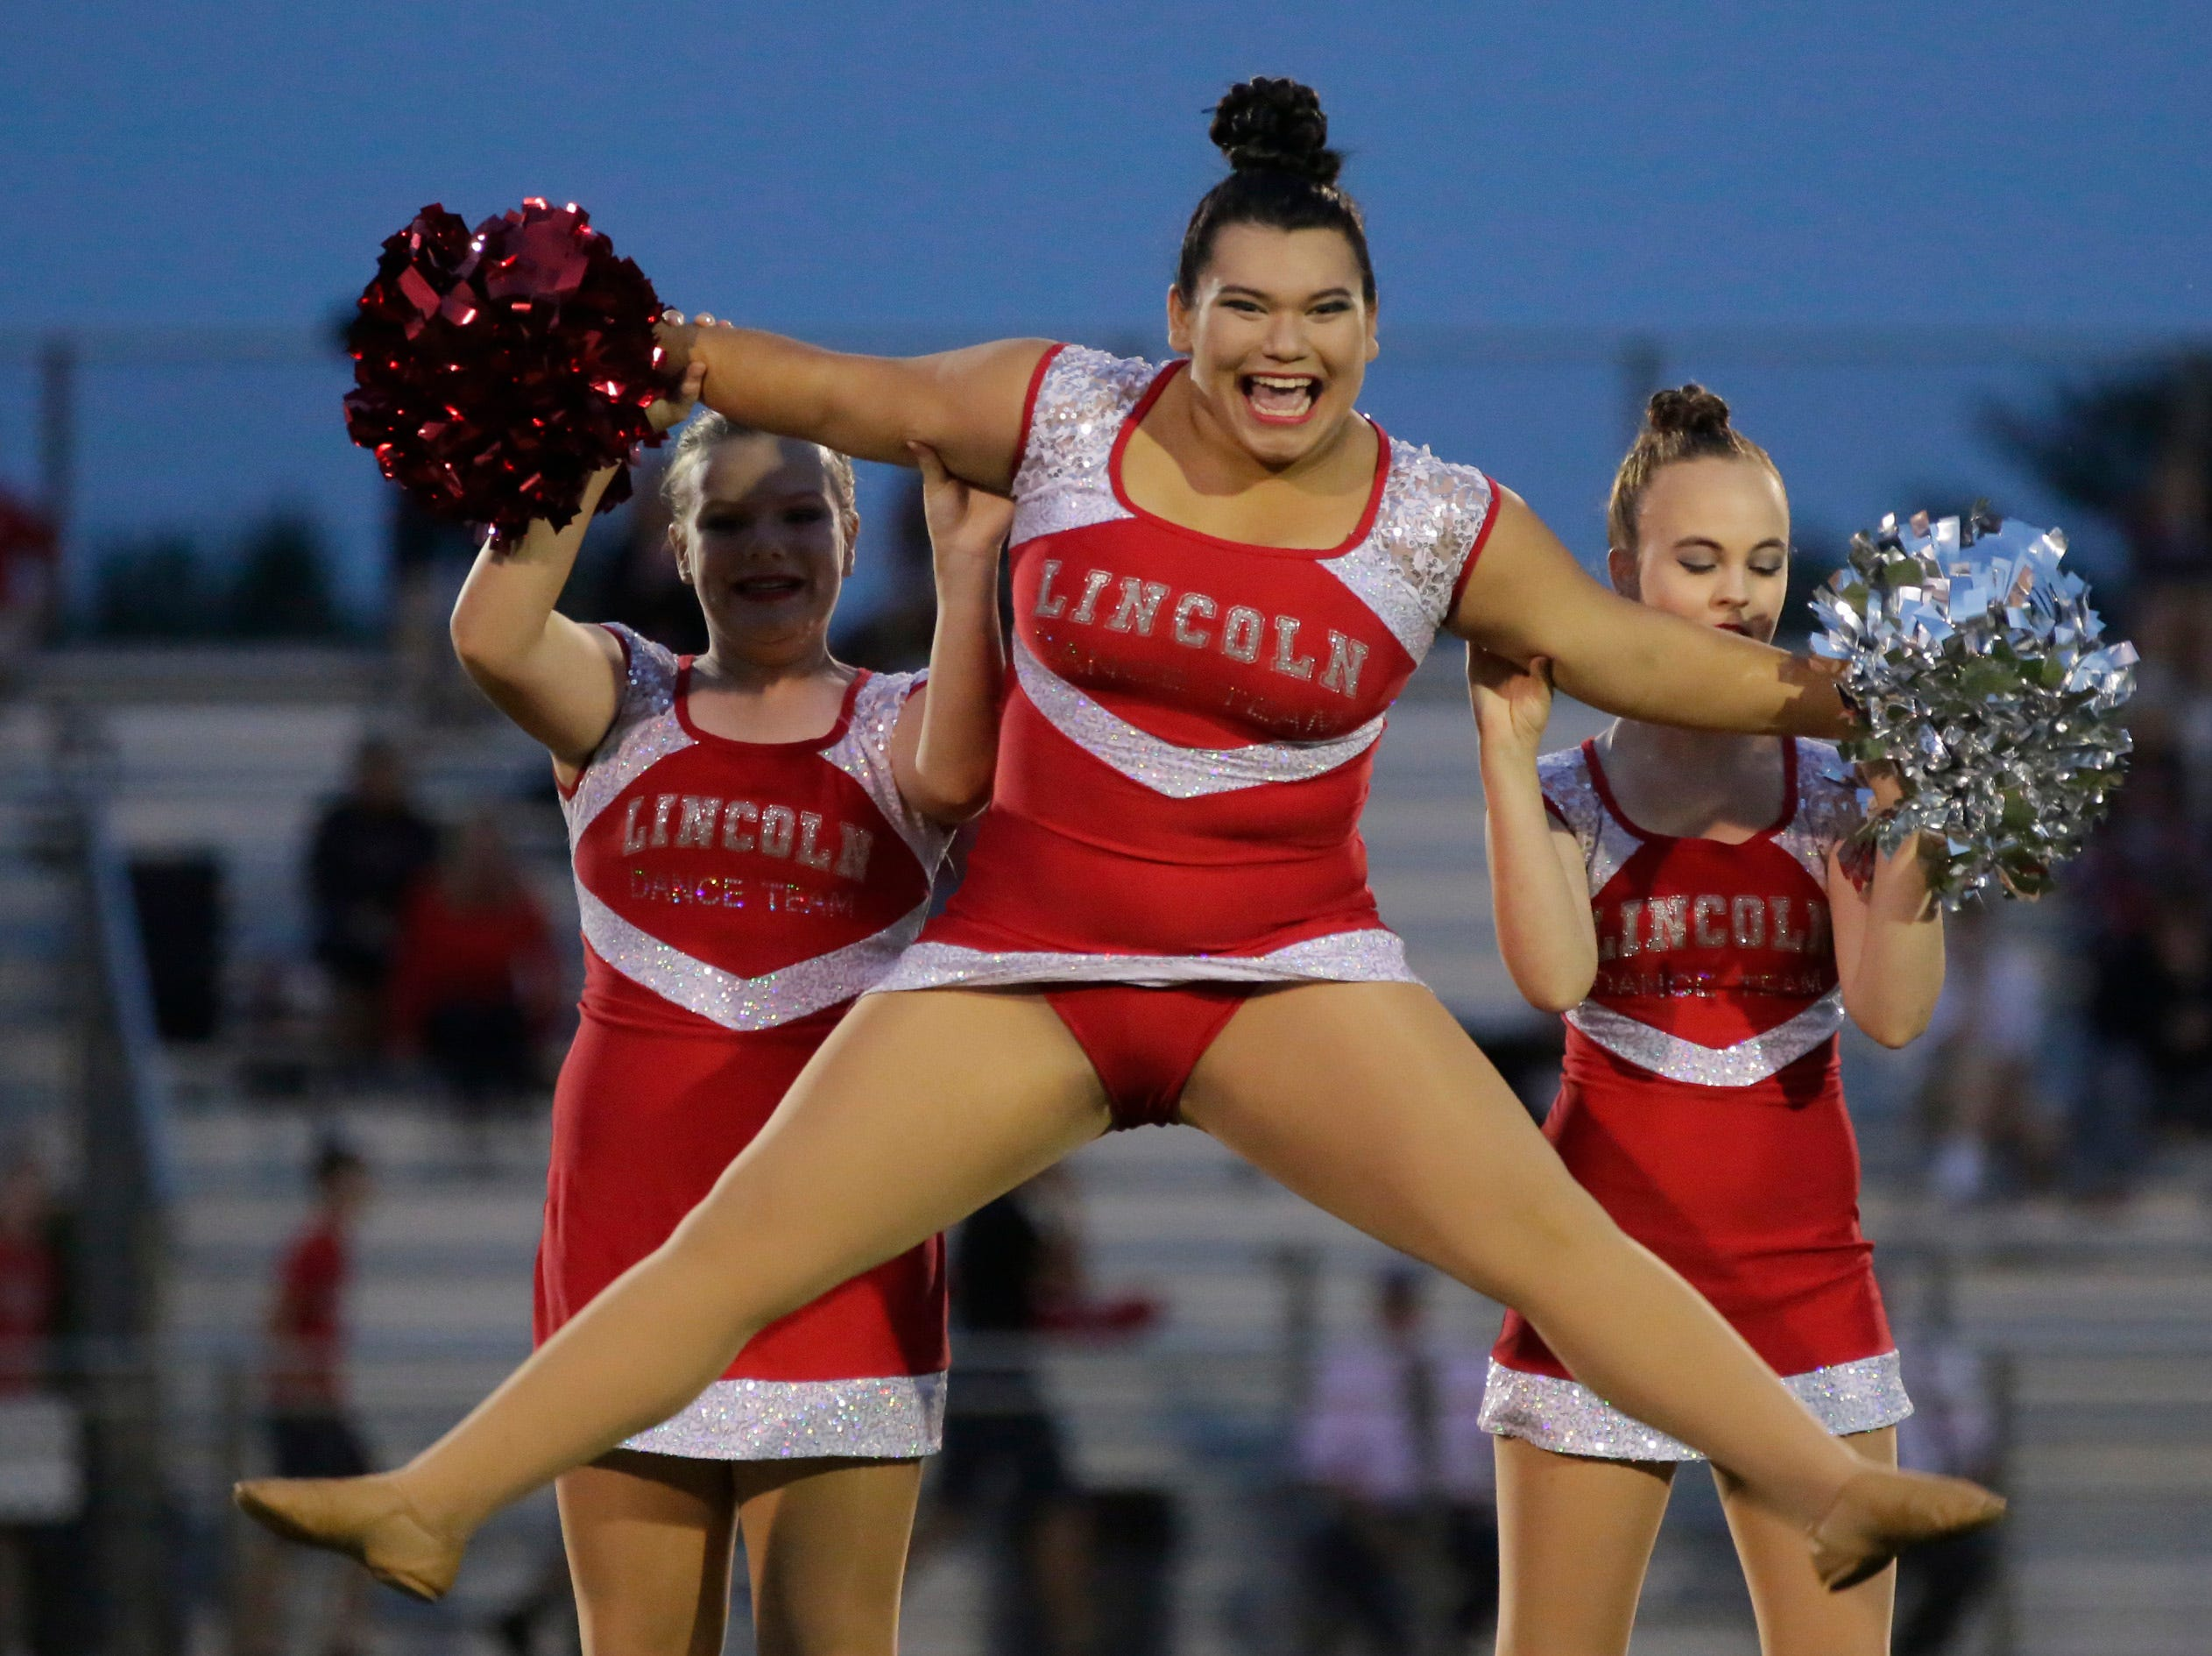 The Wisconsin Rapids' dance team performs at halftime during a game between Wisconsin Rapids and Kimberly at Wisconsin Rapids Lincoln High School Thursday, August 23, 2018.